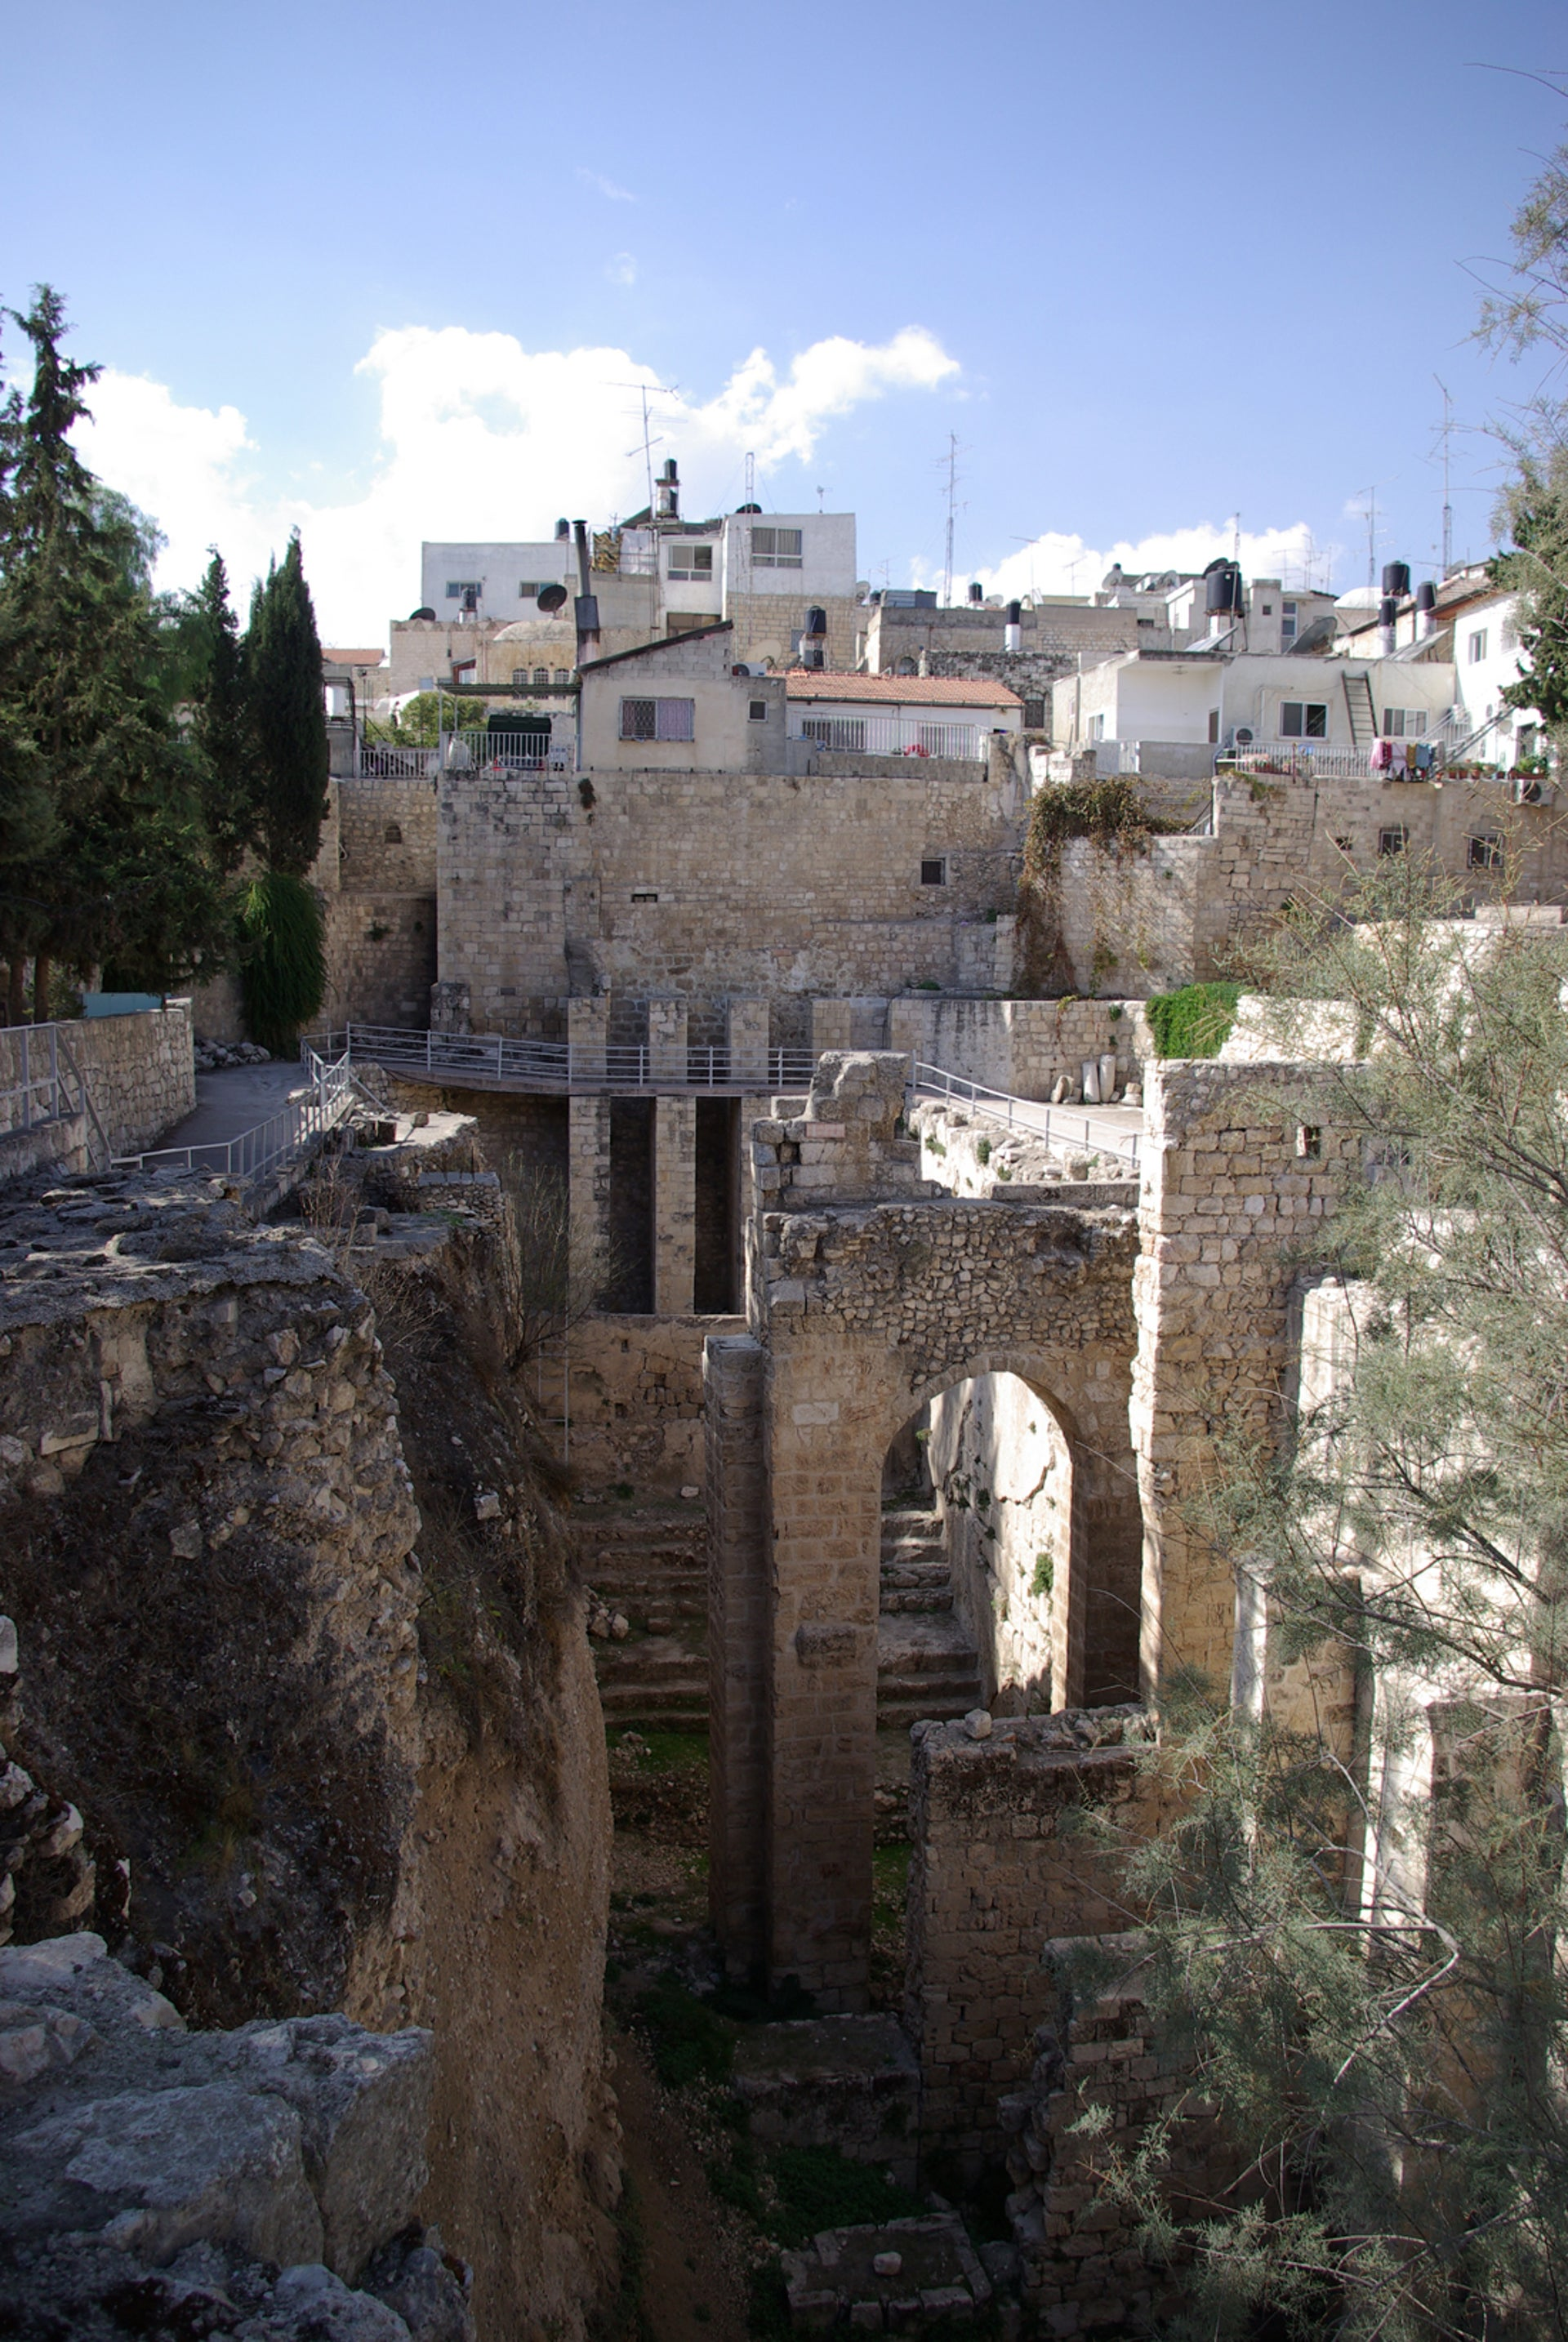 The Pool of Bethesda is definitely the Pool of Bethesda.